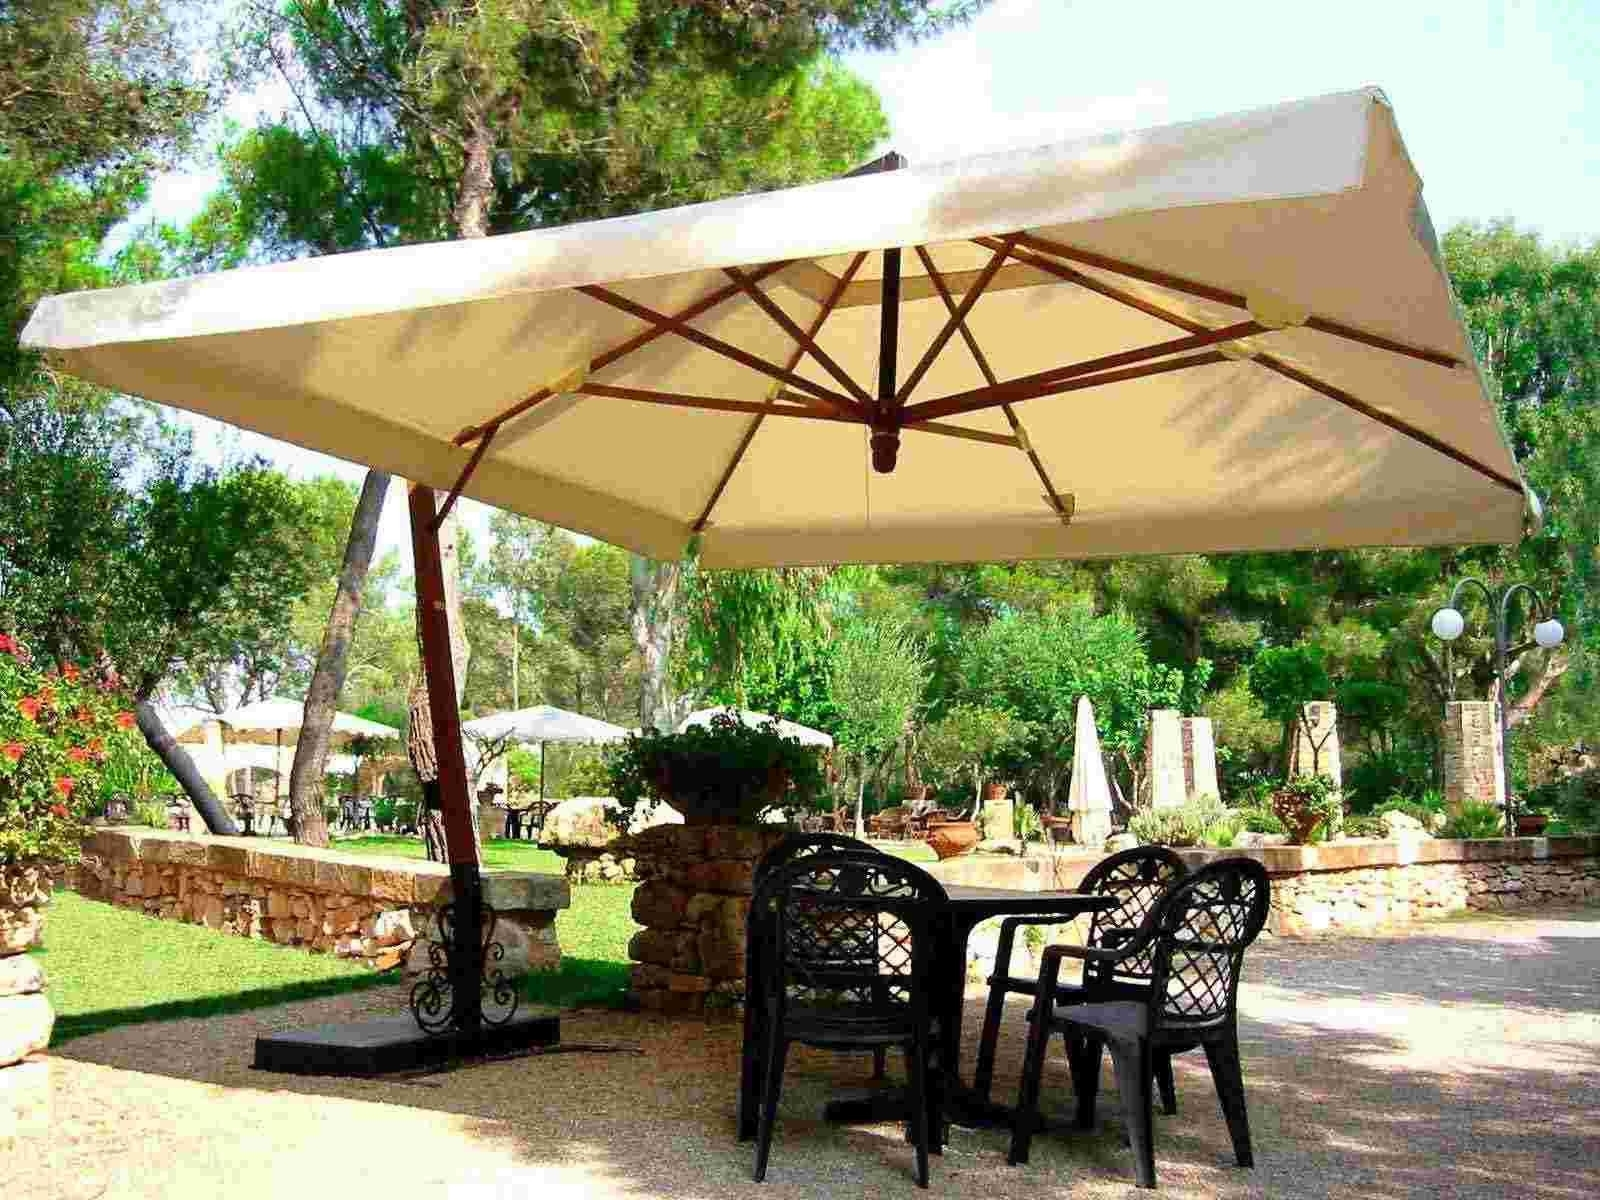 50 Patio Umbrella With Solar Lights Ke6A – Mcnamaralaw For Famous Rectangle Patio Umbrellas (View 3 of 20)